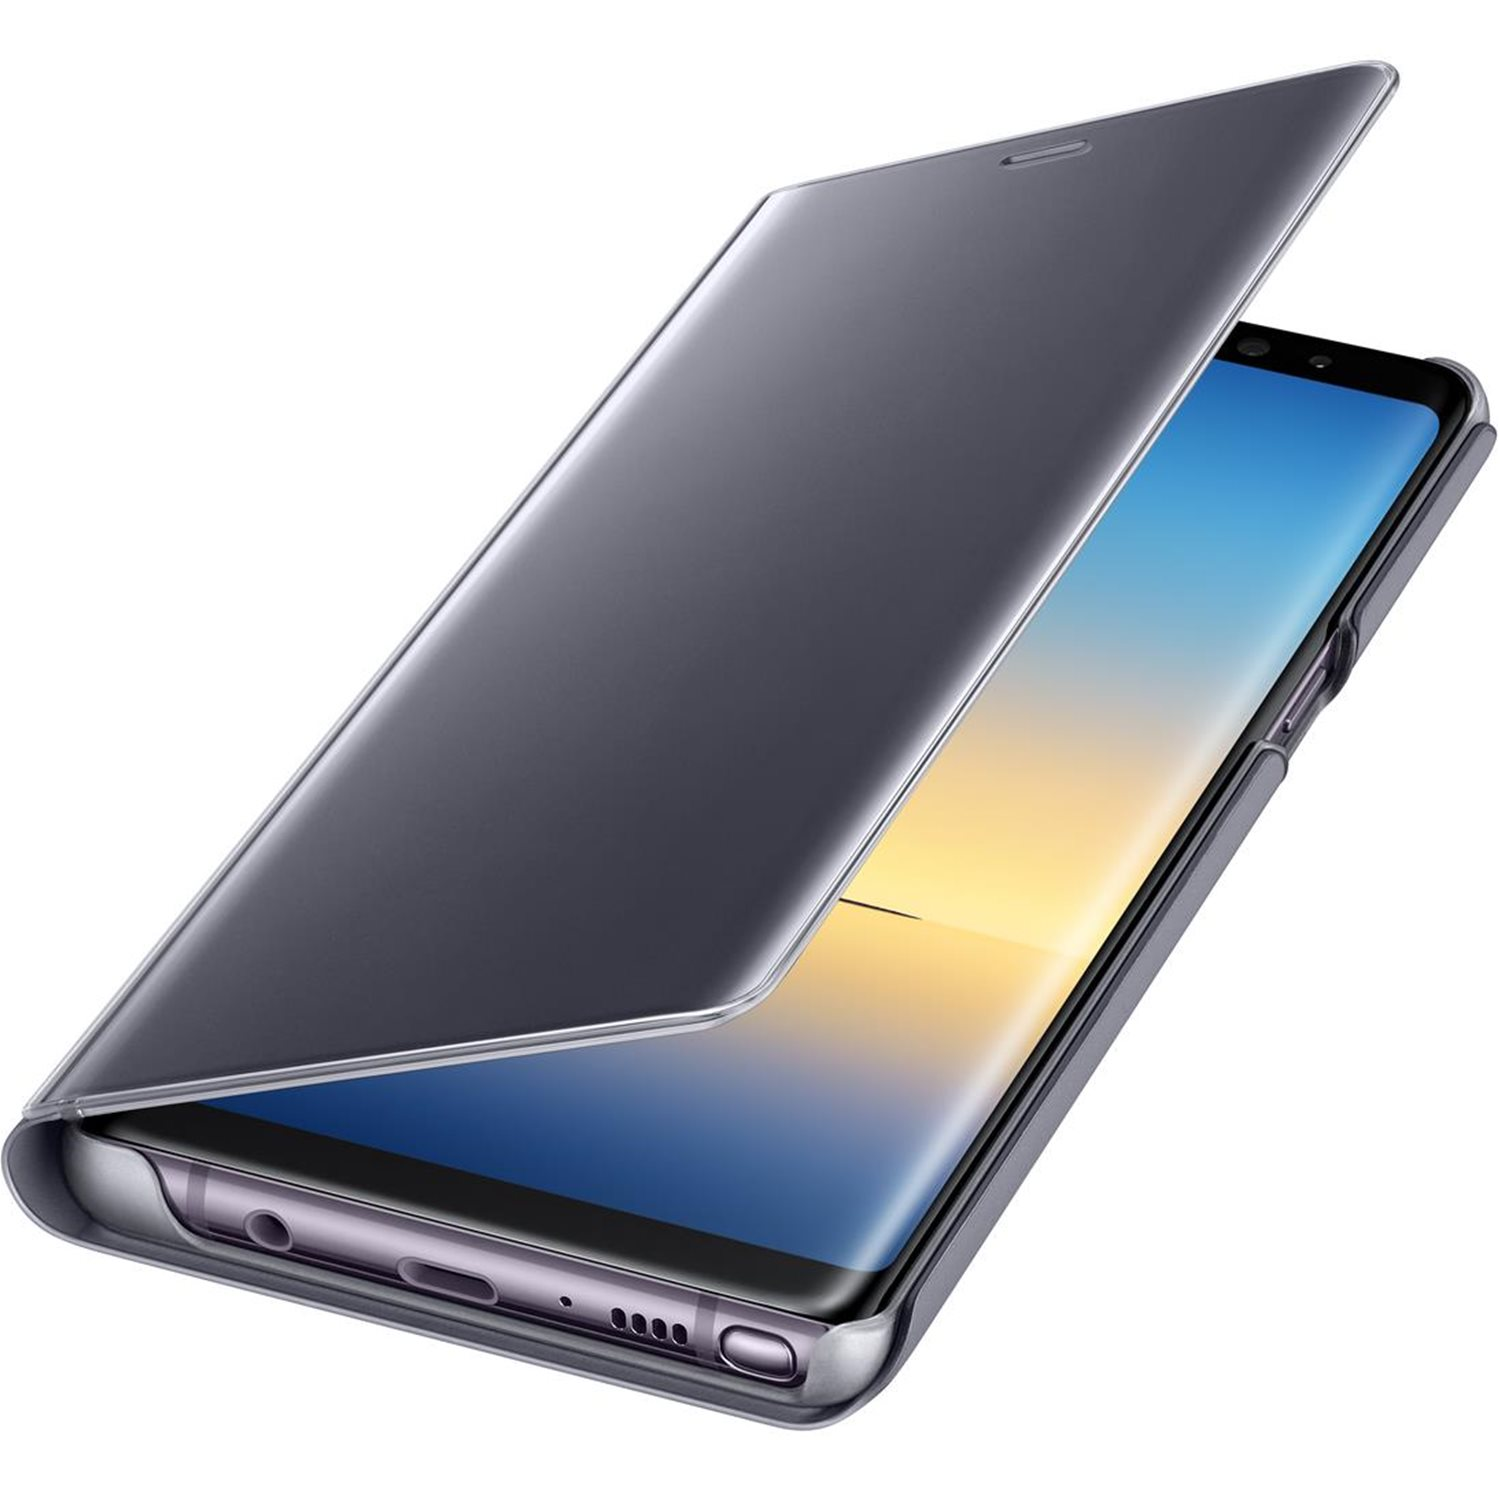 Official Samsung Galaxy Note 8 Clear View Standing Cover Case - Grey